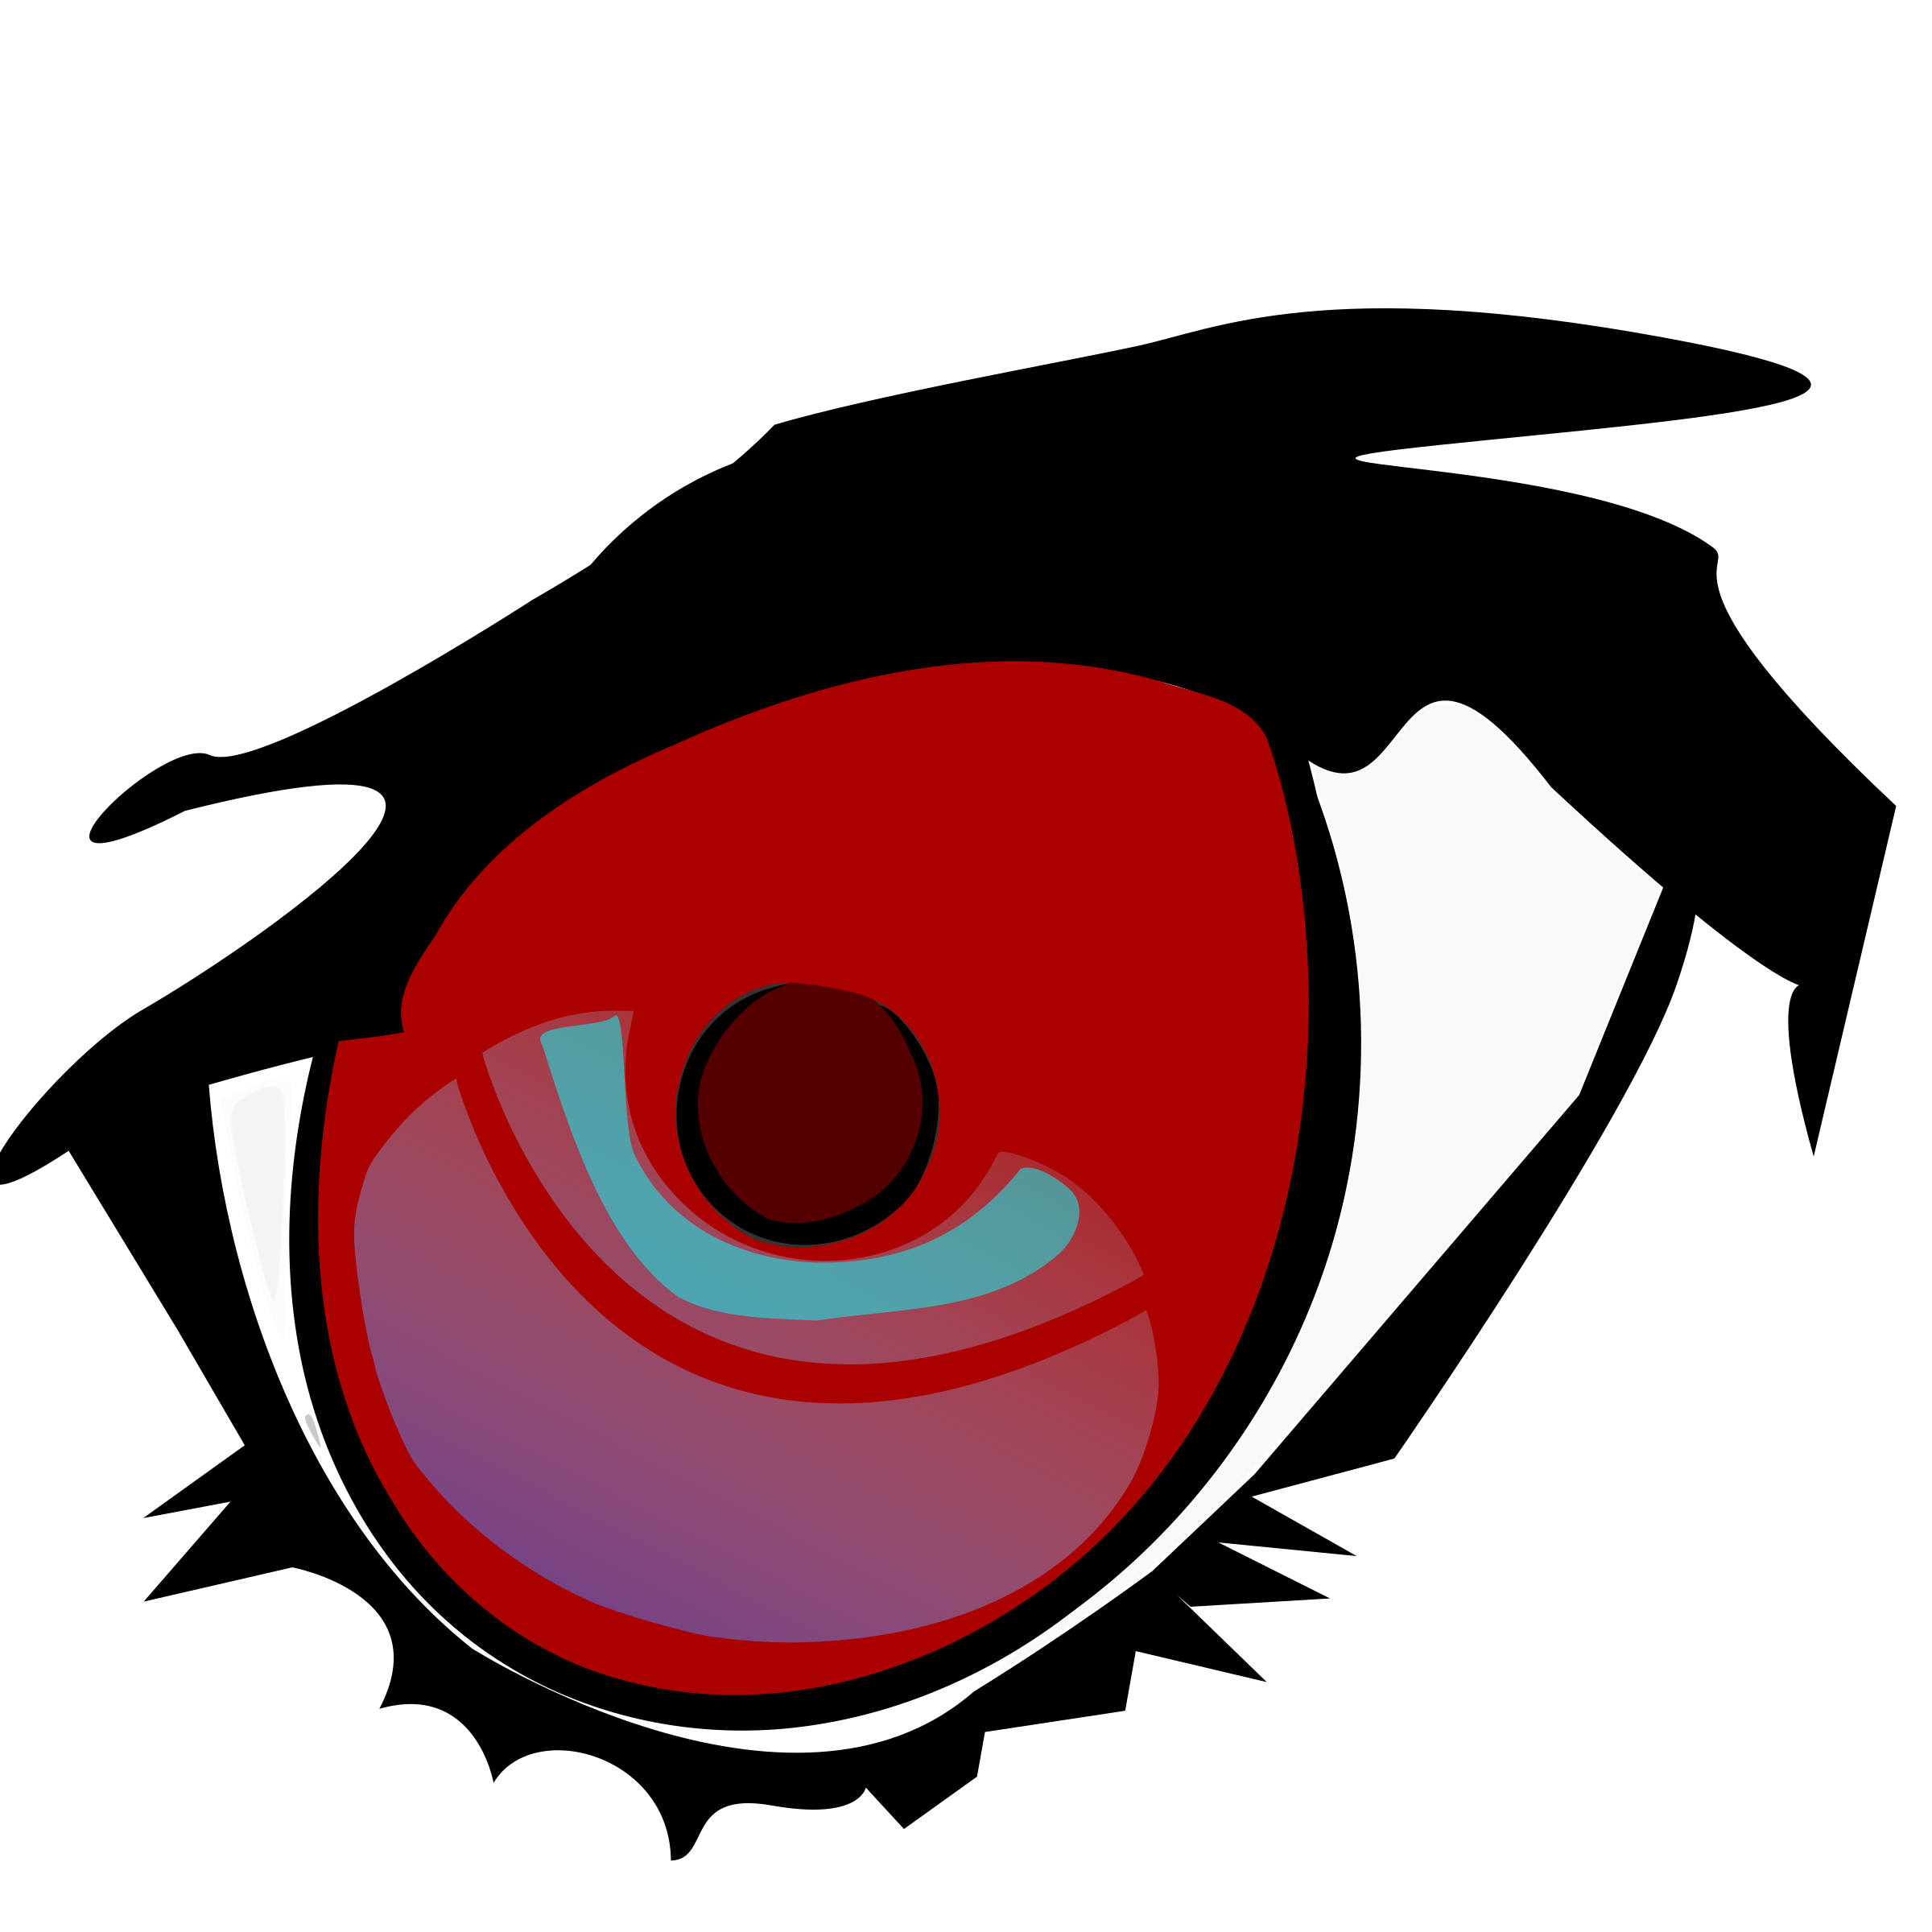 Easy_red_eye by jiero